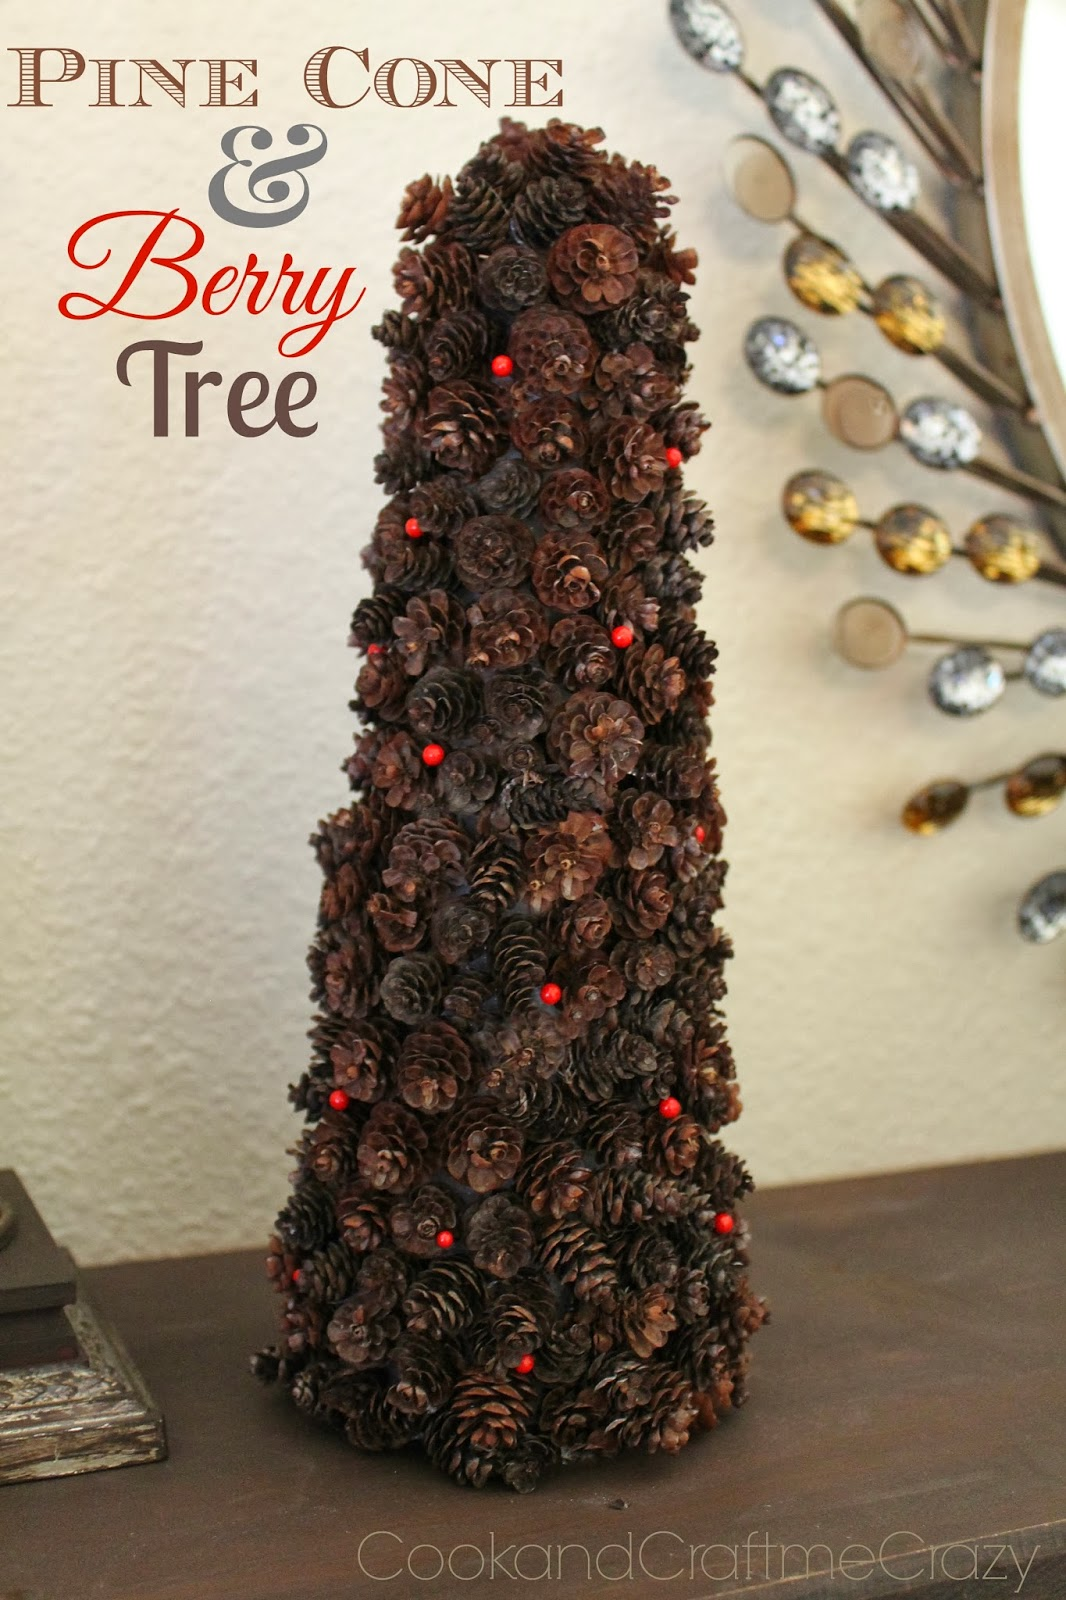 Cook and craft me crazy pine cone berry tree christmas for What to do with pine cones for christmas